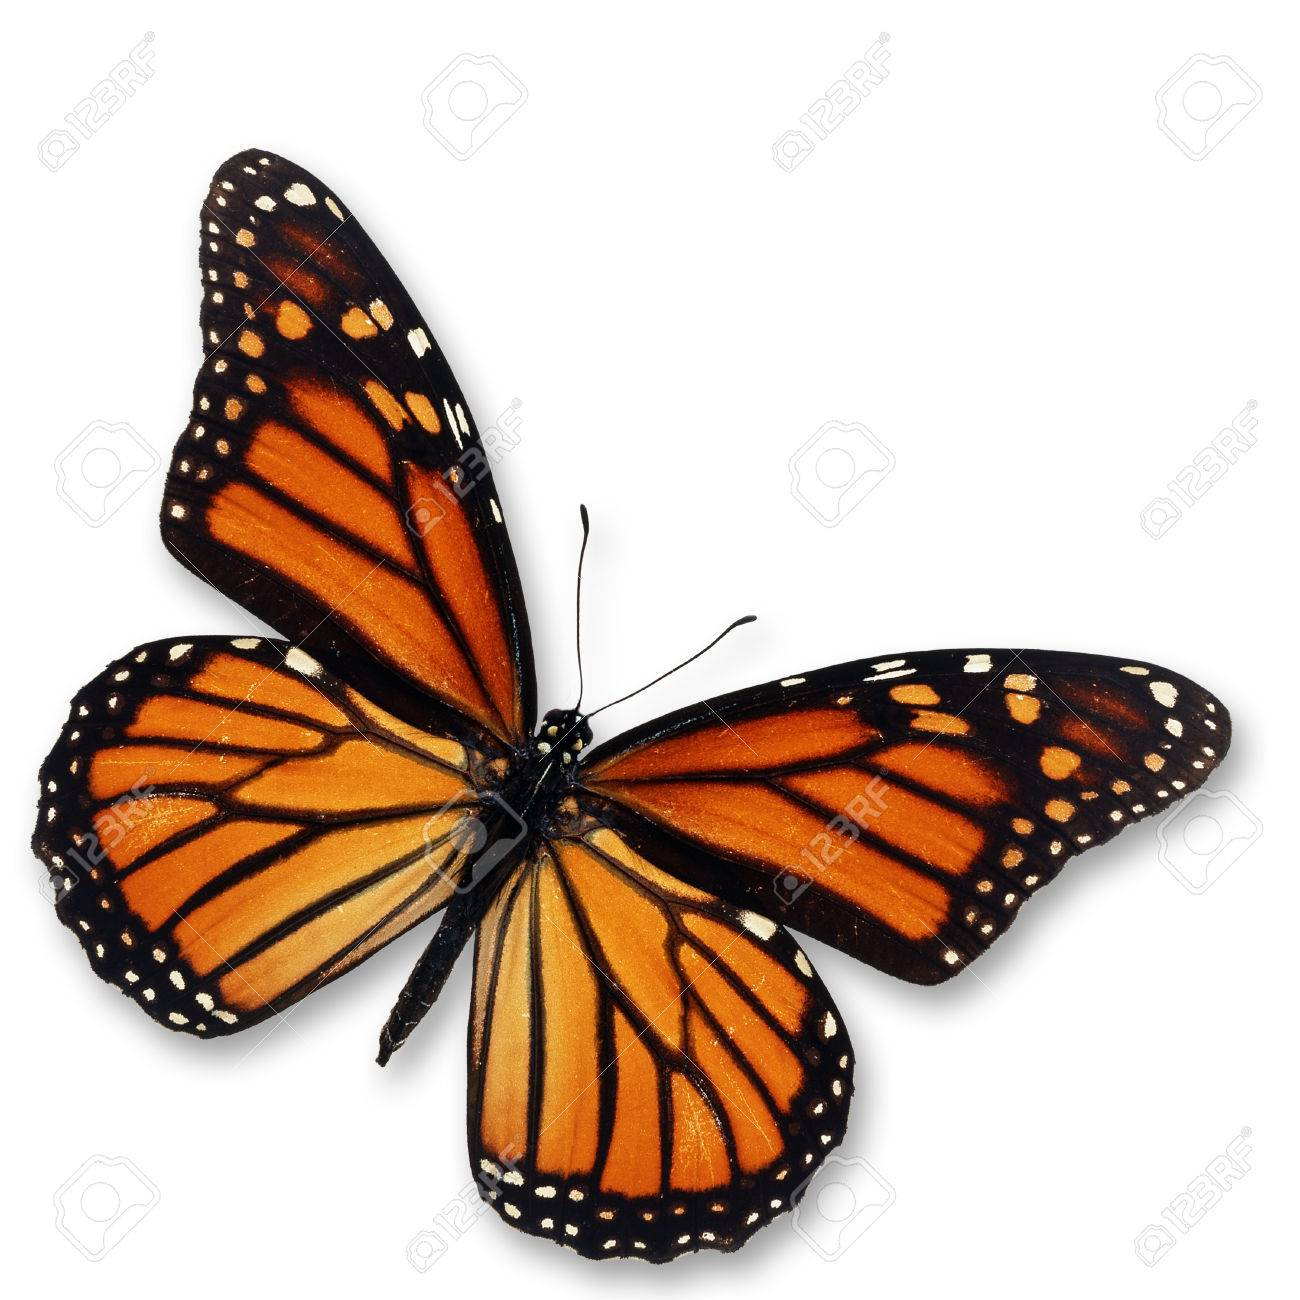 Beautiful monarch butterfly isolated on white background. - 33425712